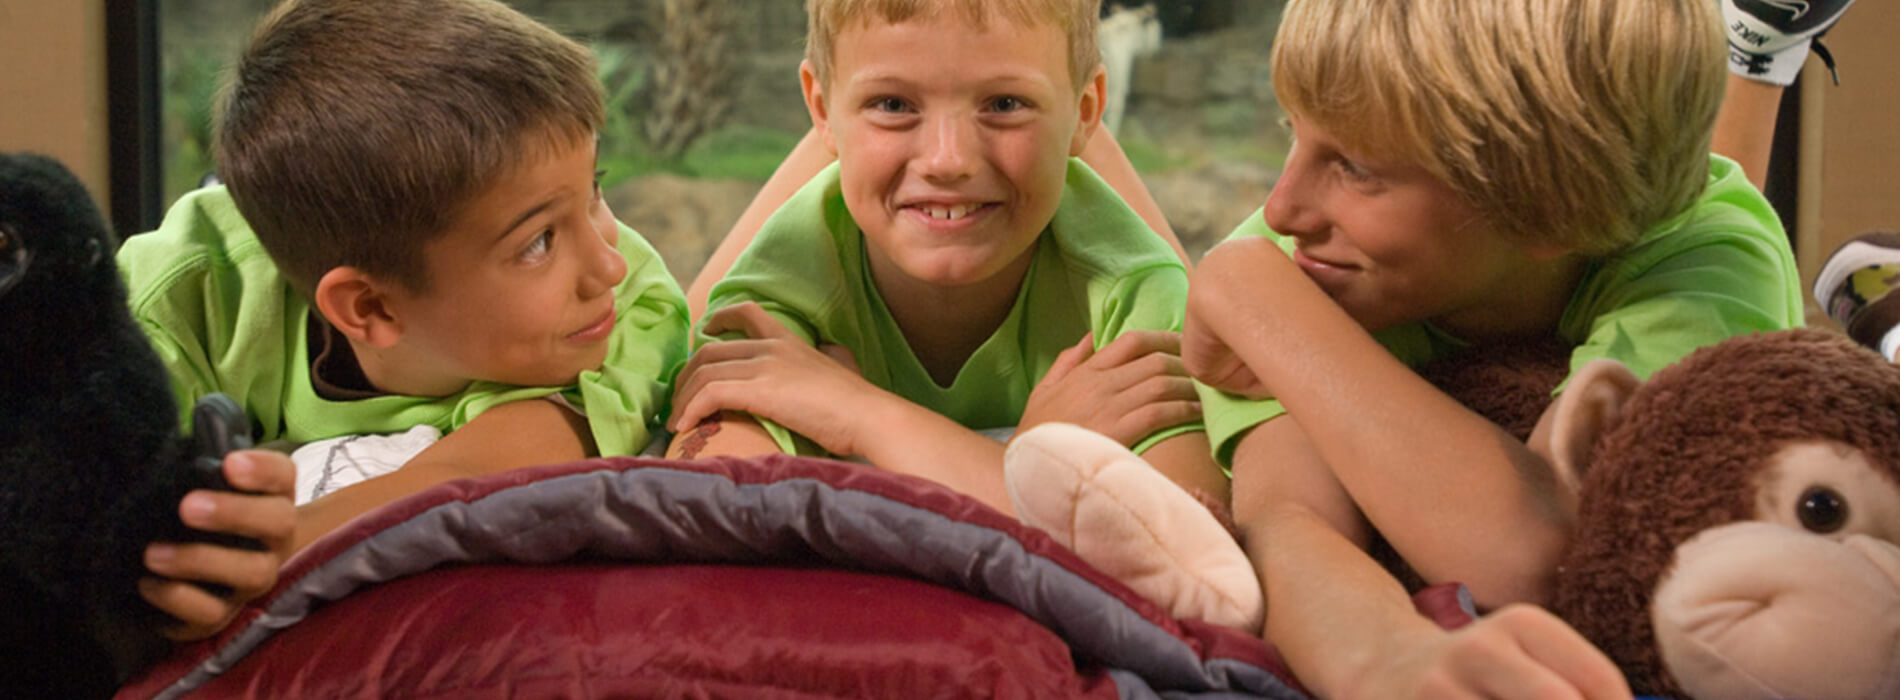 Three young boys in green shirts enjoy themselves while at overnight camp at Busch Gardens Tampa Bay, located in Florida